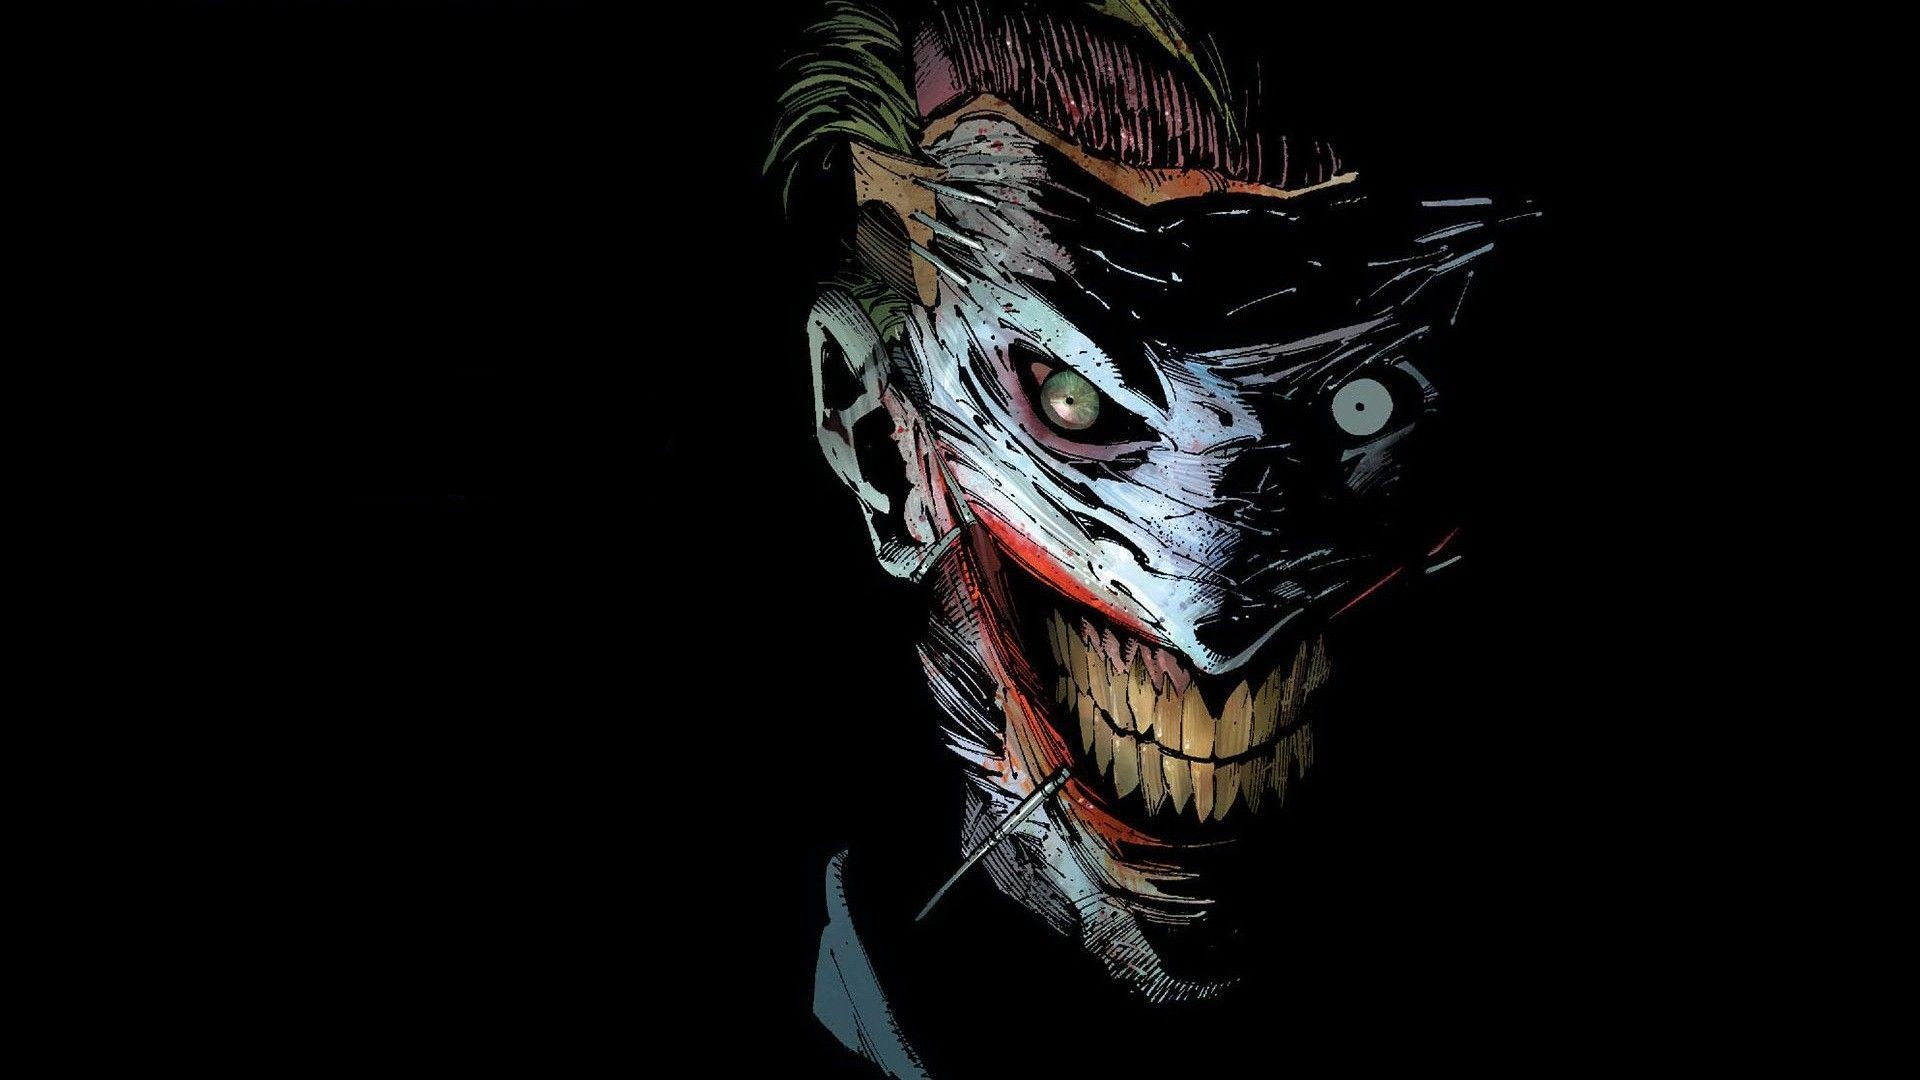 Res: 1920x1080, Scary Desktop HD Wallpaper, Scary Images | Cool Wallpapers